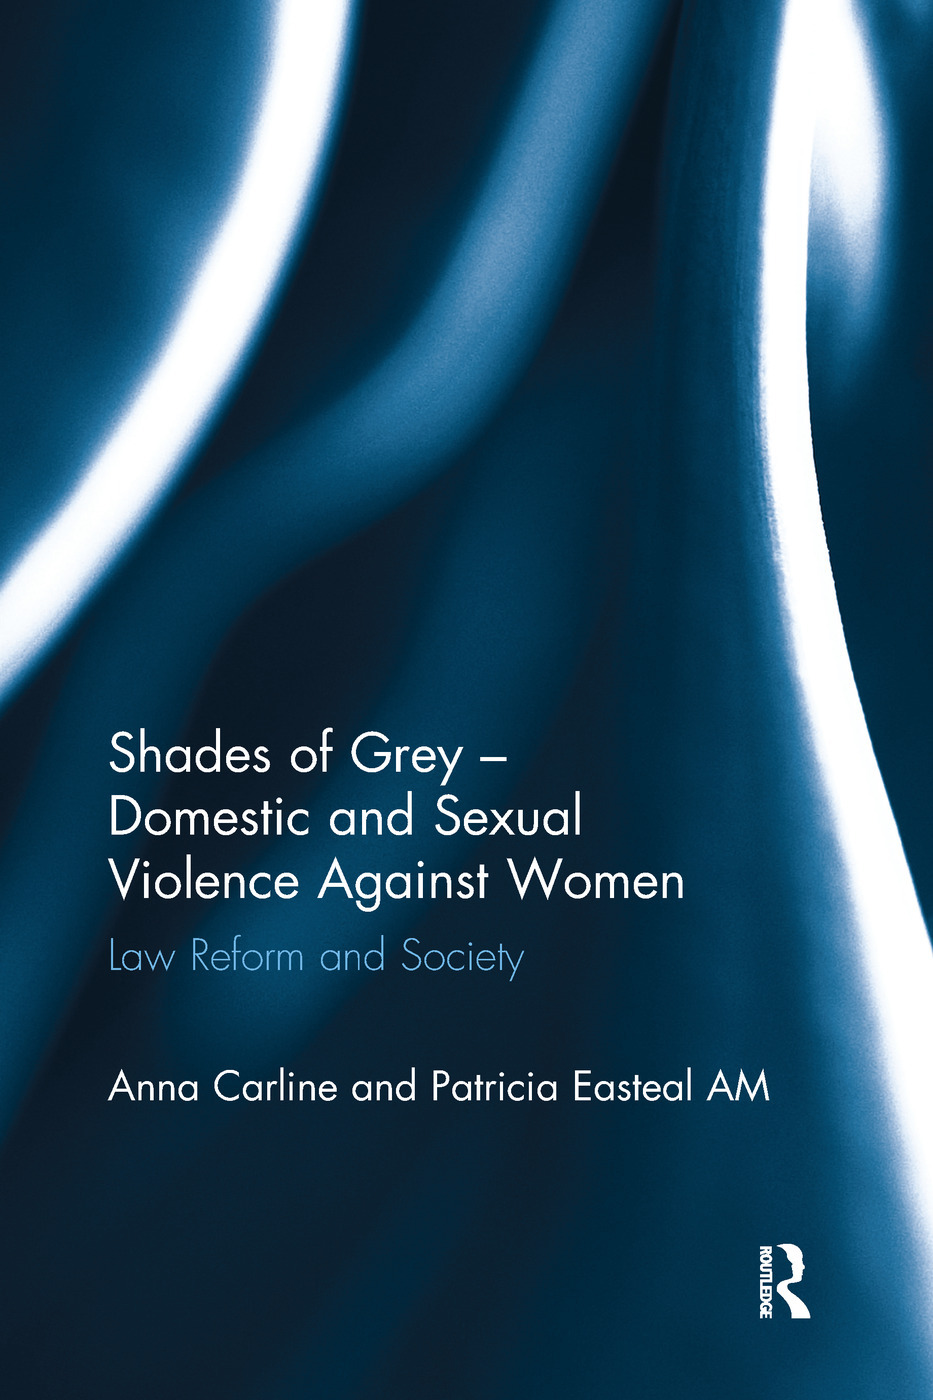 Sexual and domestic violence against women